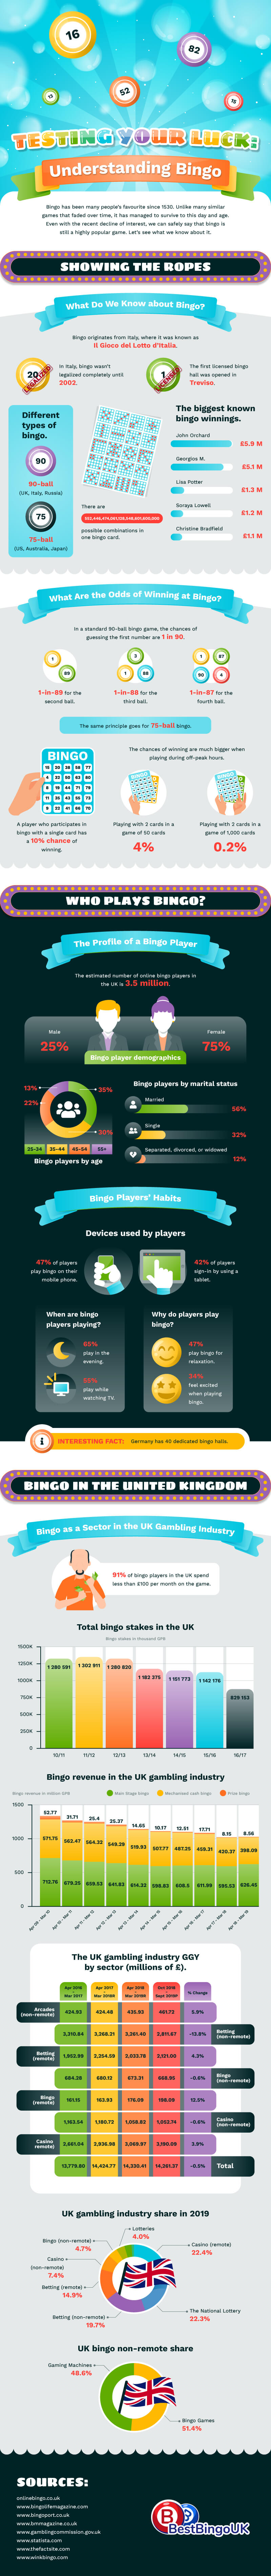 The Rise of Online Bingo in the Networked World